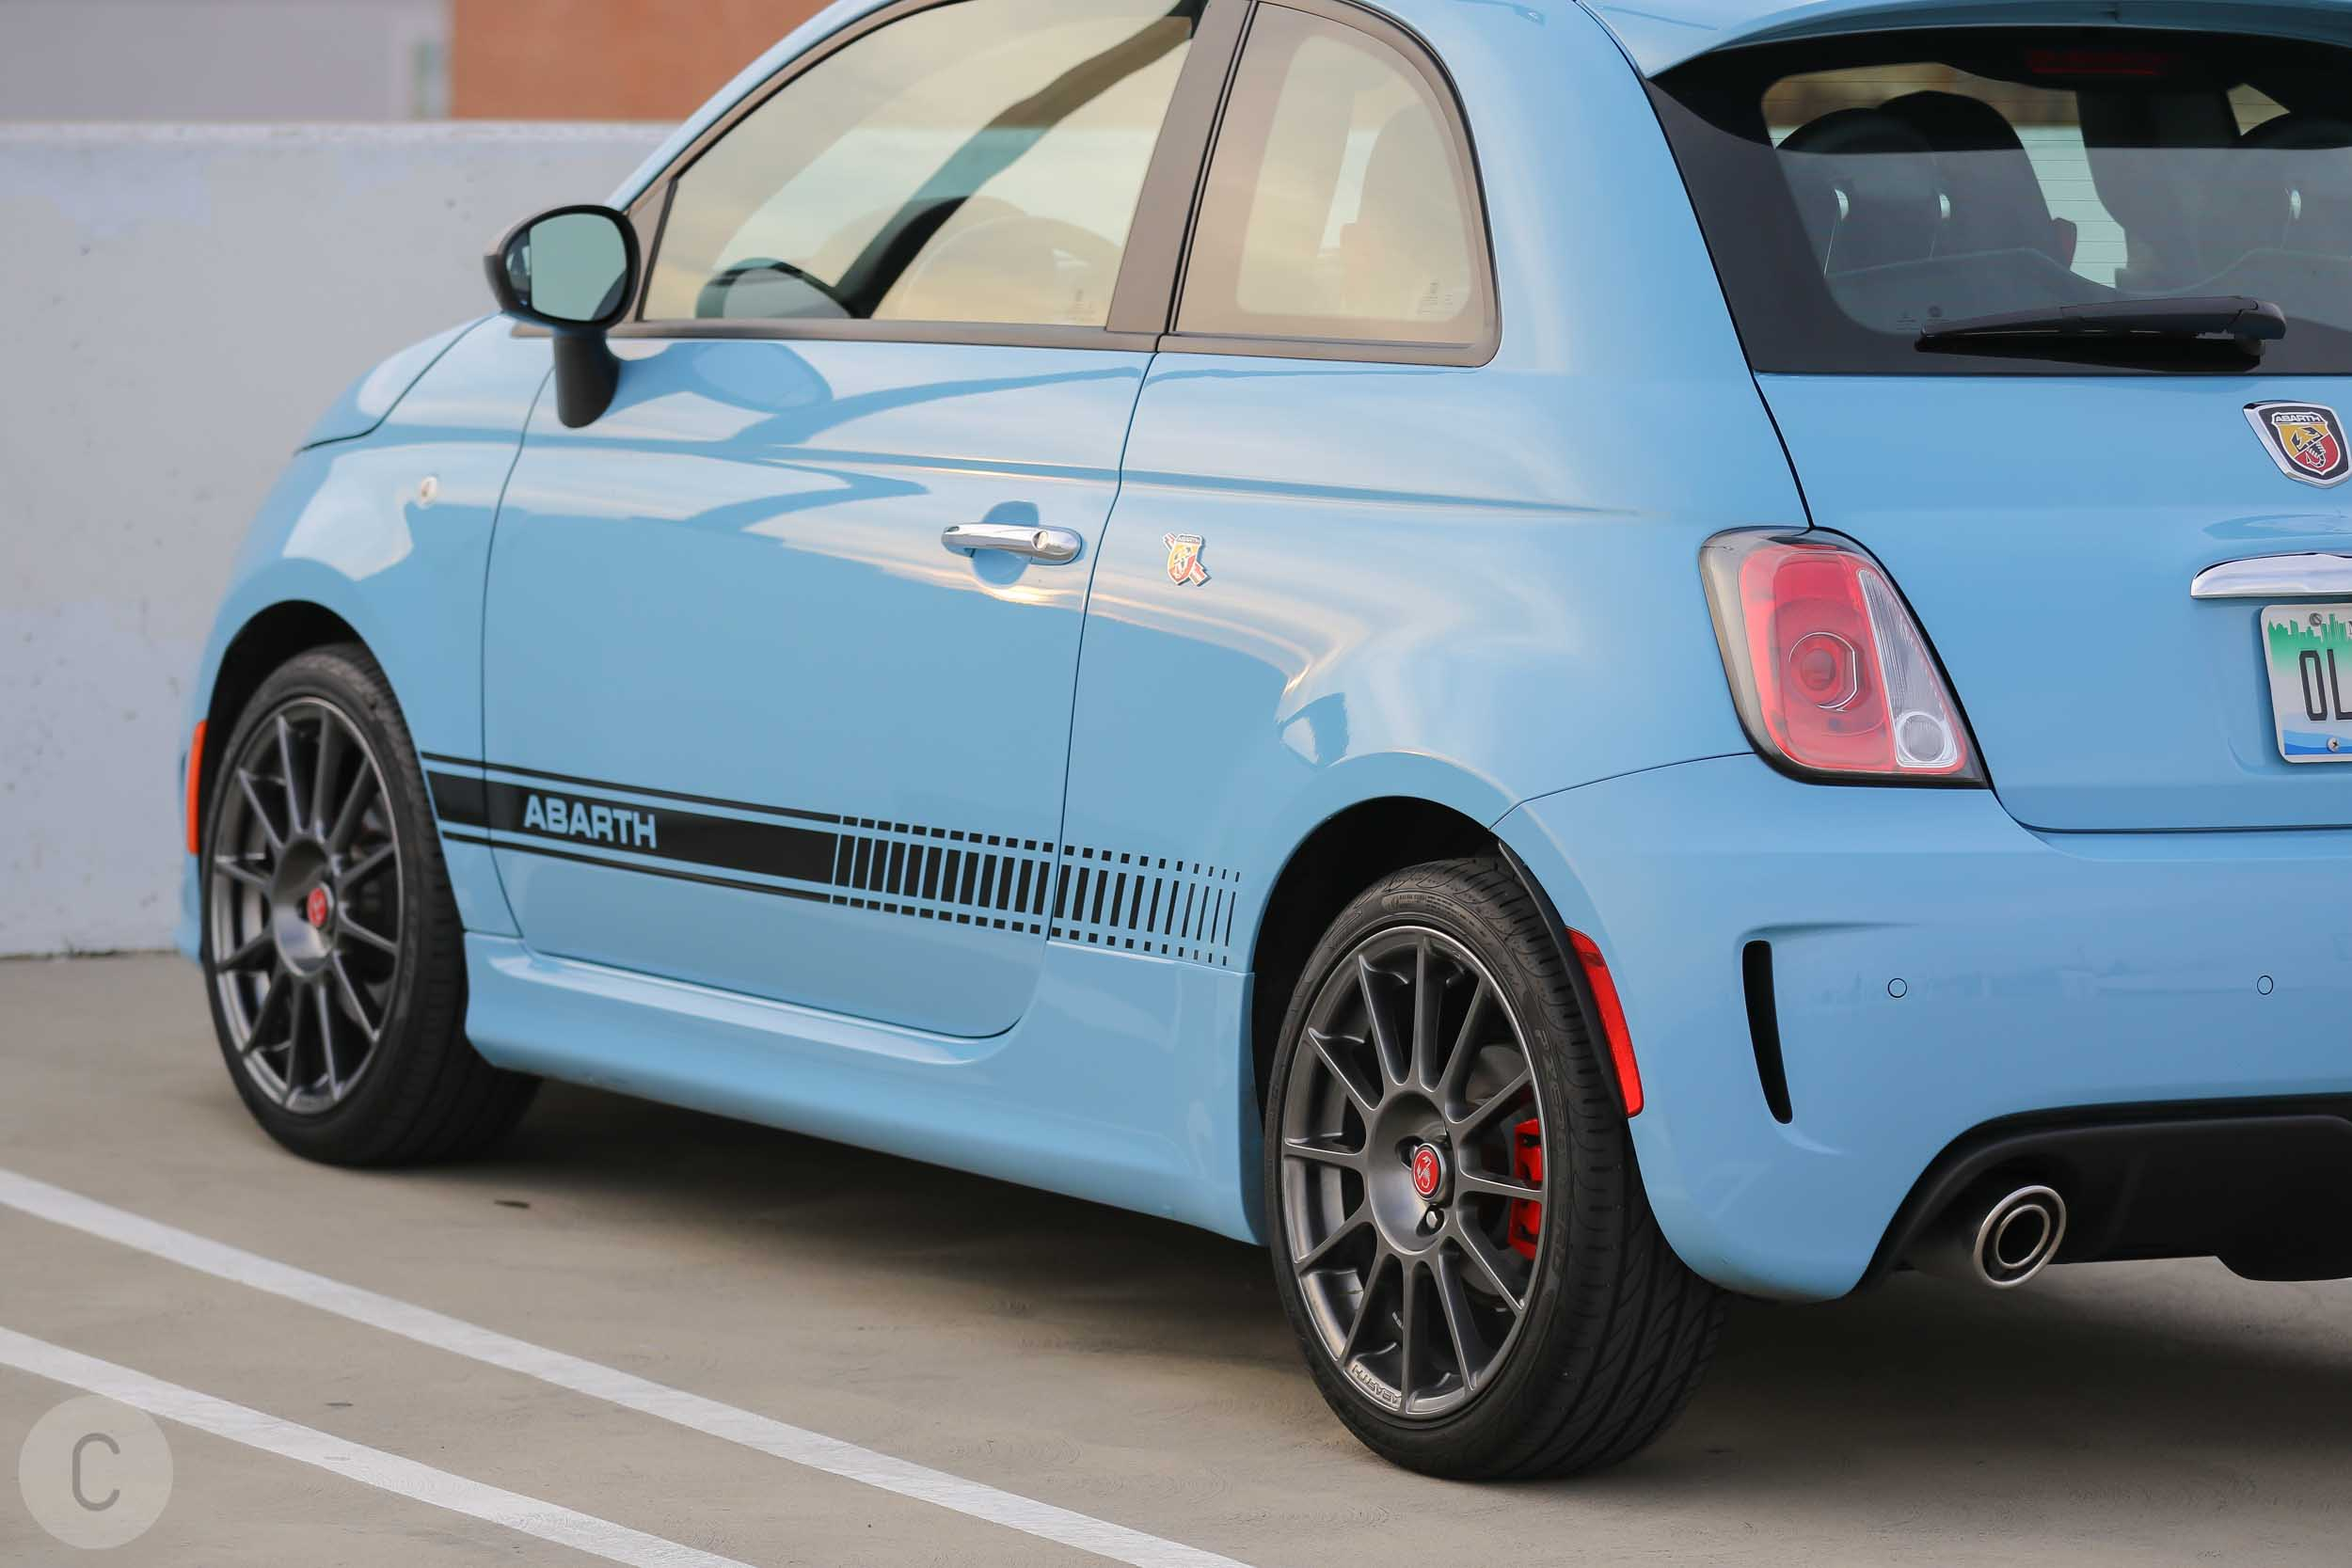 blu carfanatics exterior celeste shade automatically abarth light o it some this blue mini points the in vs brownie of retro blog stunning earn fiat available